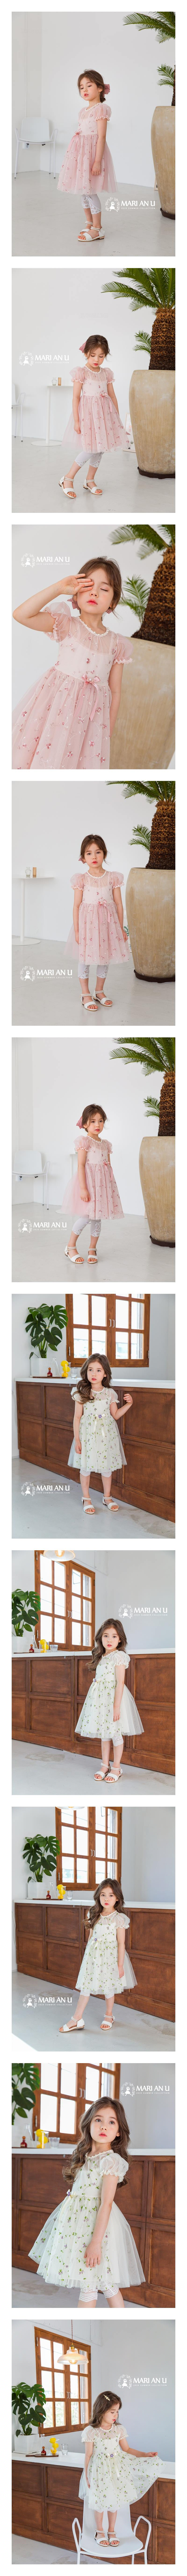 MARI AN U - Korean Children Fashion - #Kfashion4kids - Lavender One-piece